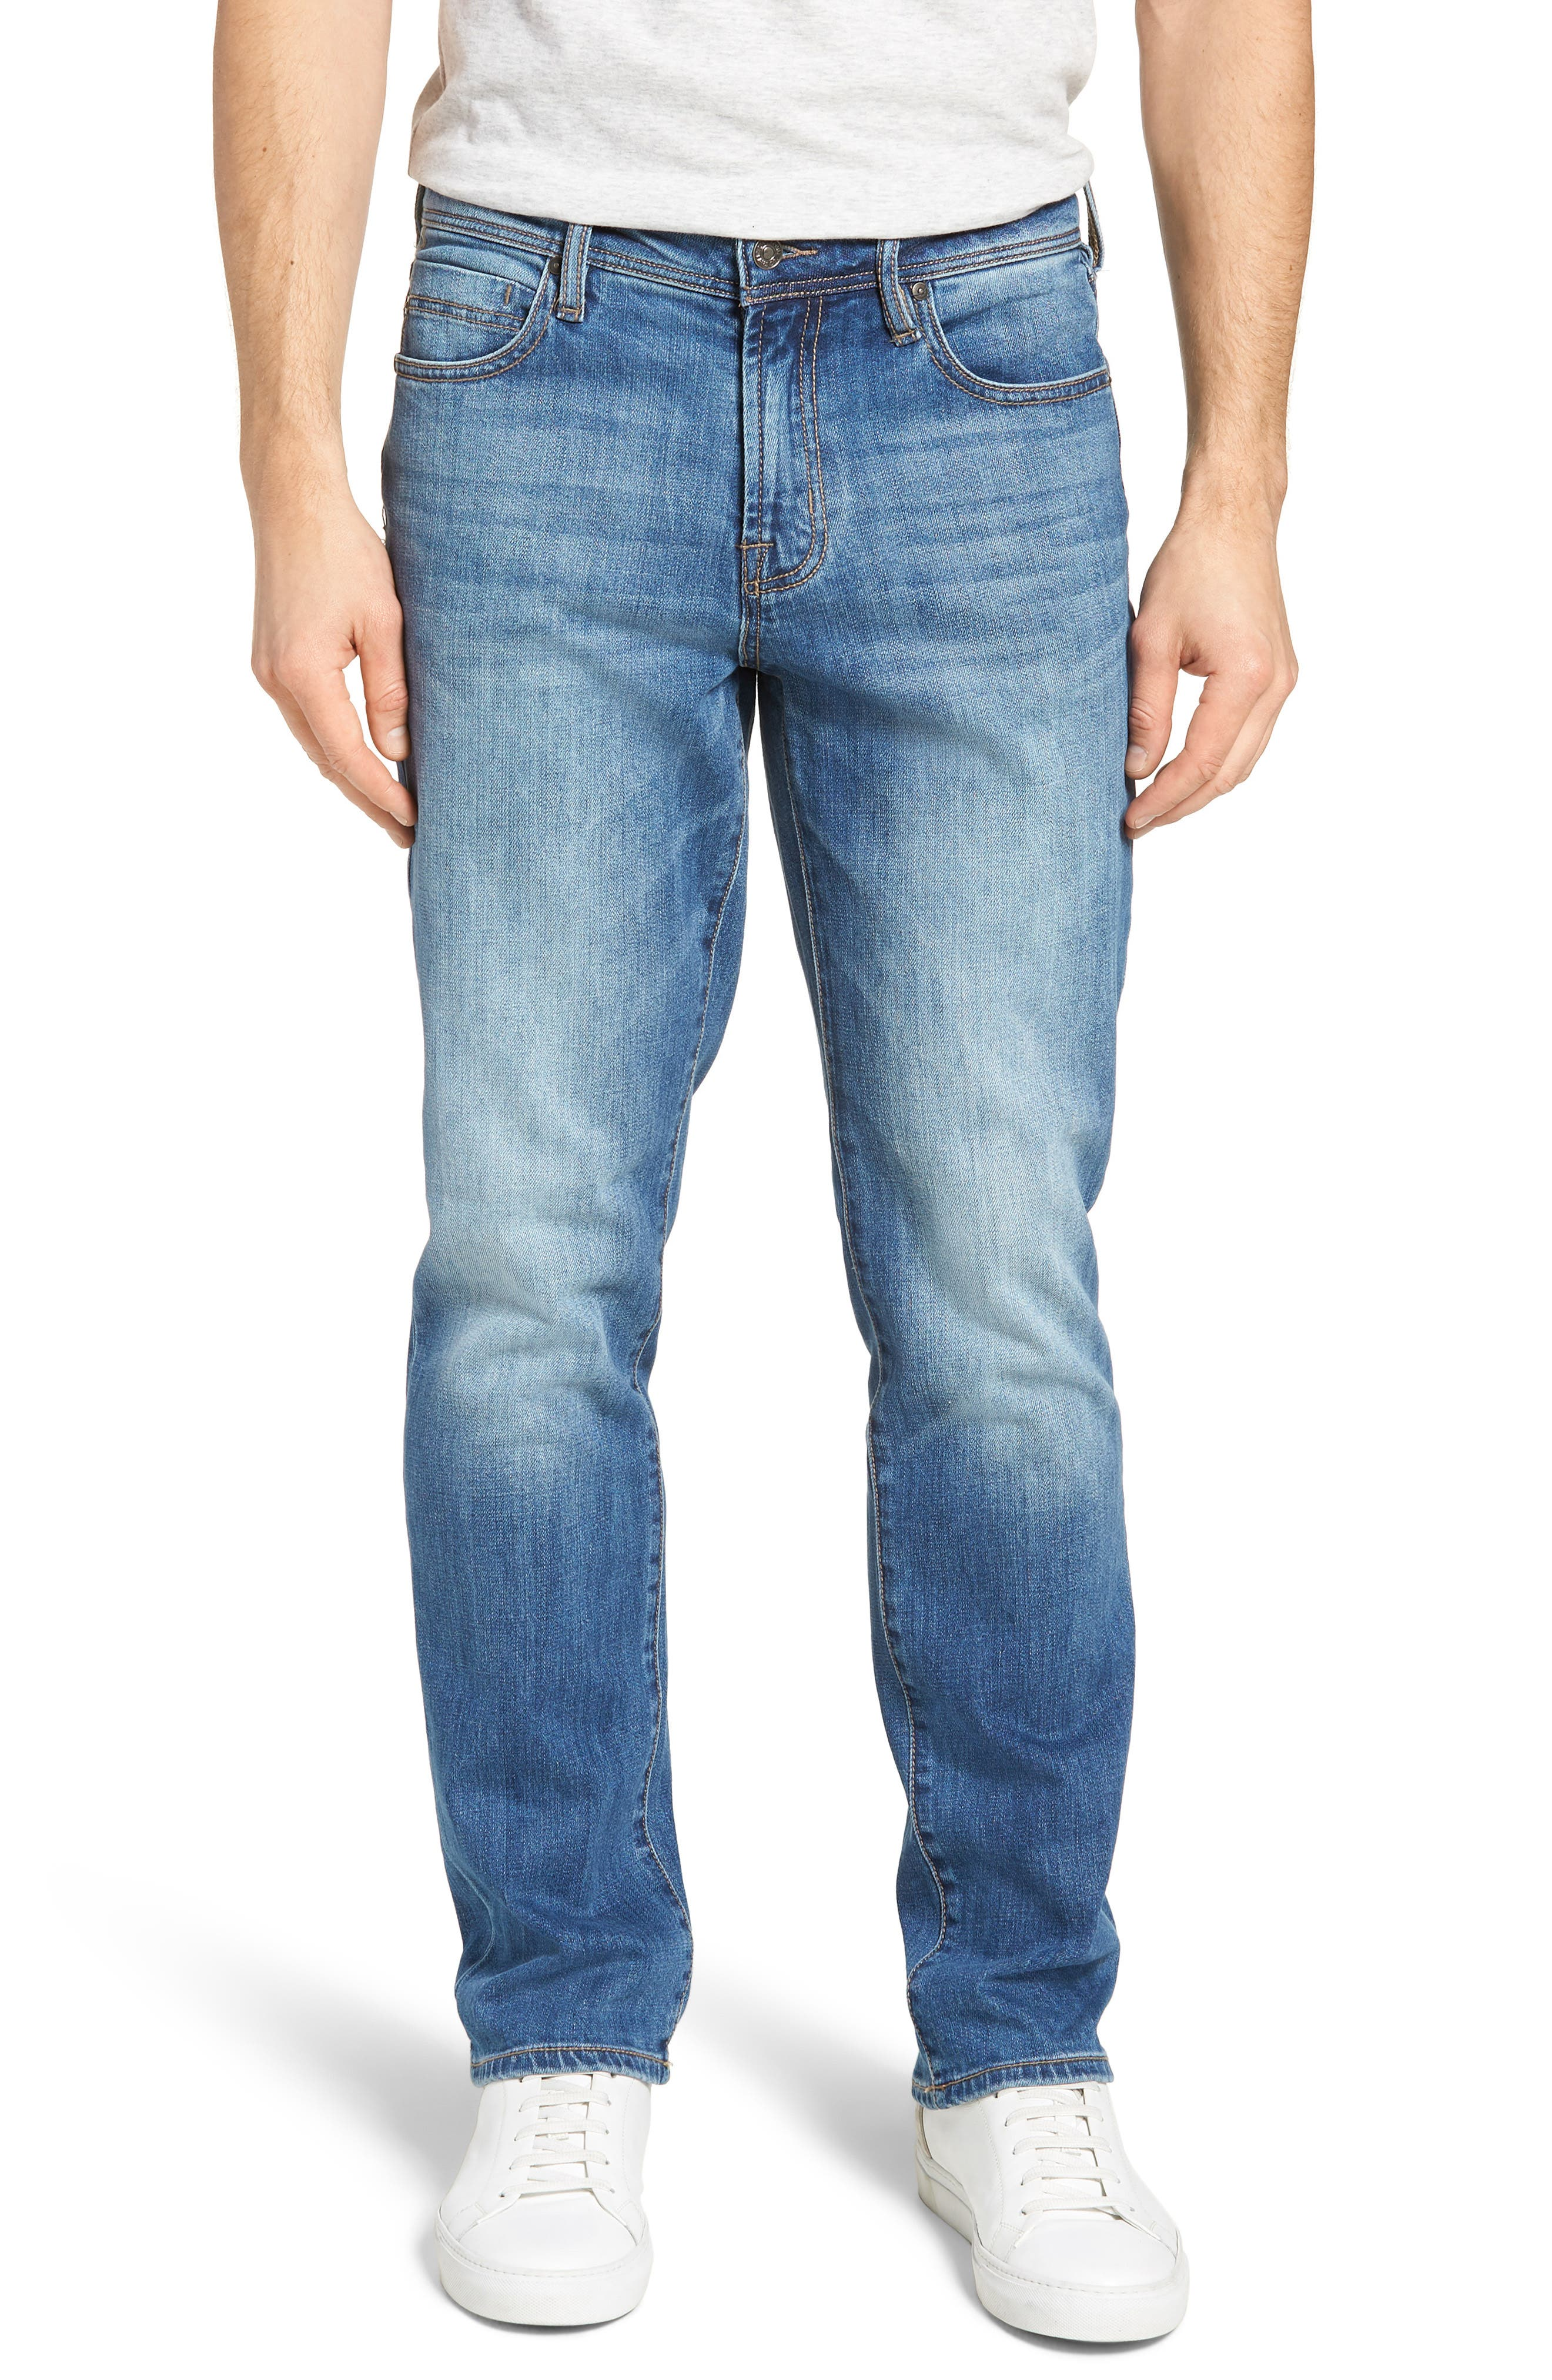 Liverpool Jeans Co. Relaxed Fit Jeans (Bryson Vintage Medium)